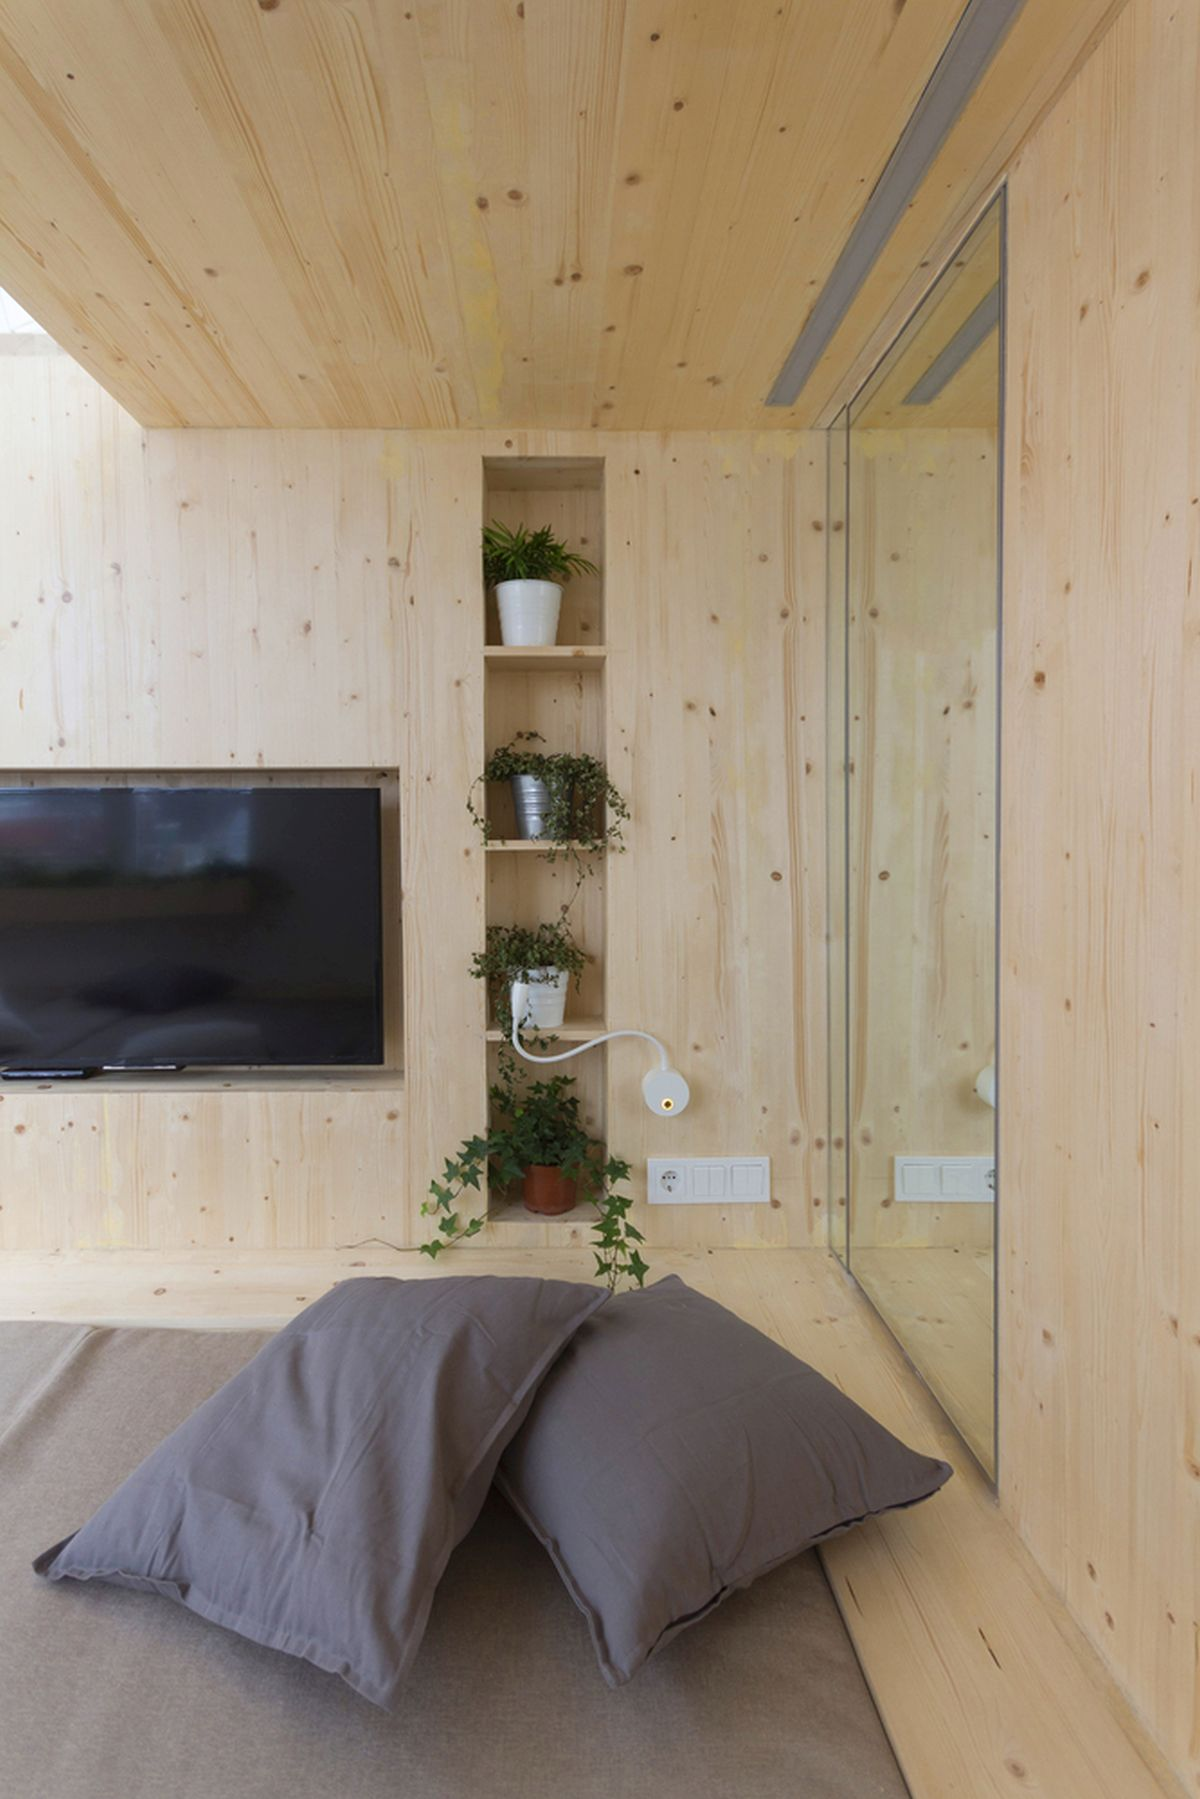 Ruetemple summer family home built-in shelves